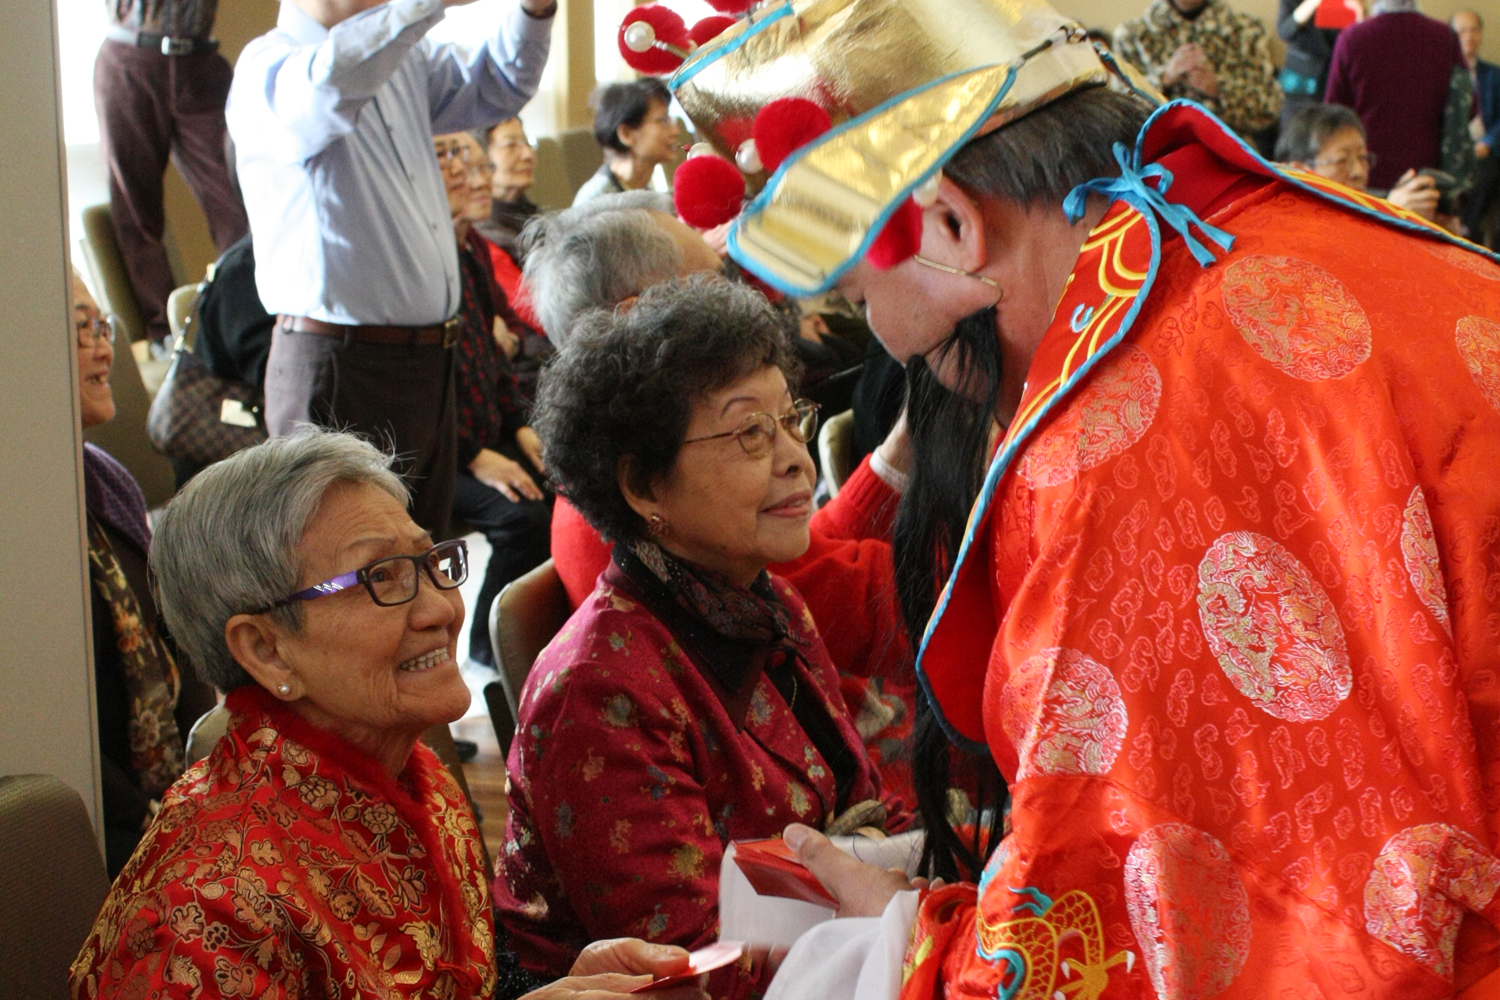 Mon Sheong Court residents celebrating Chinese New Year